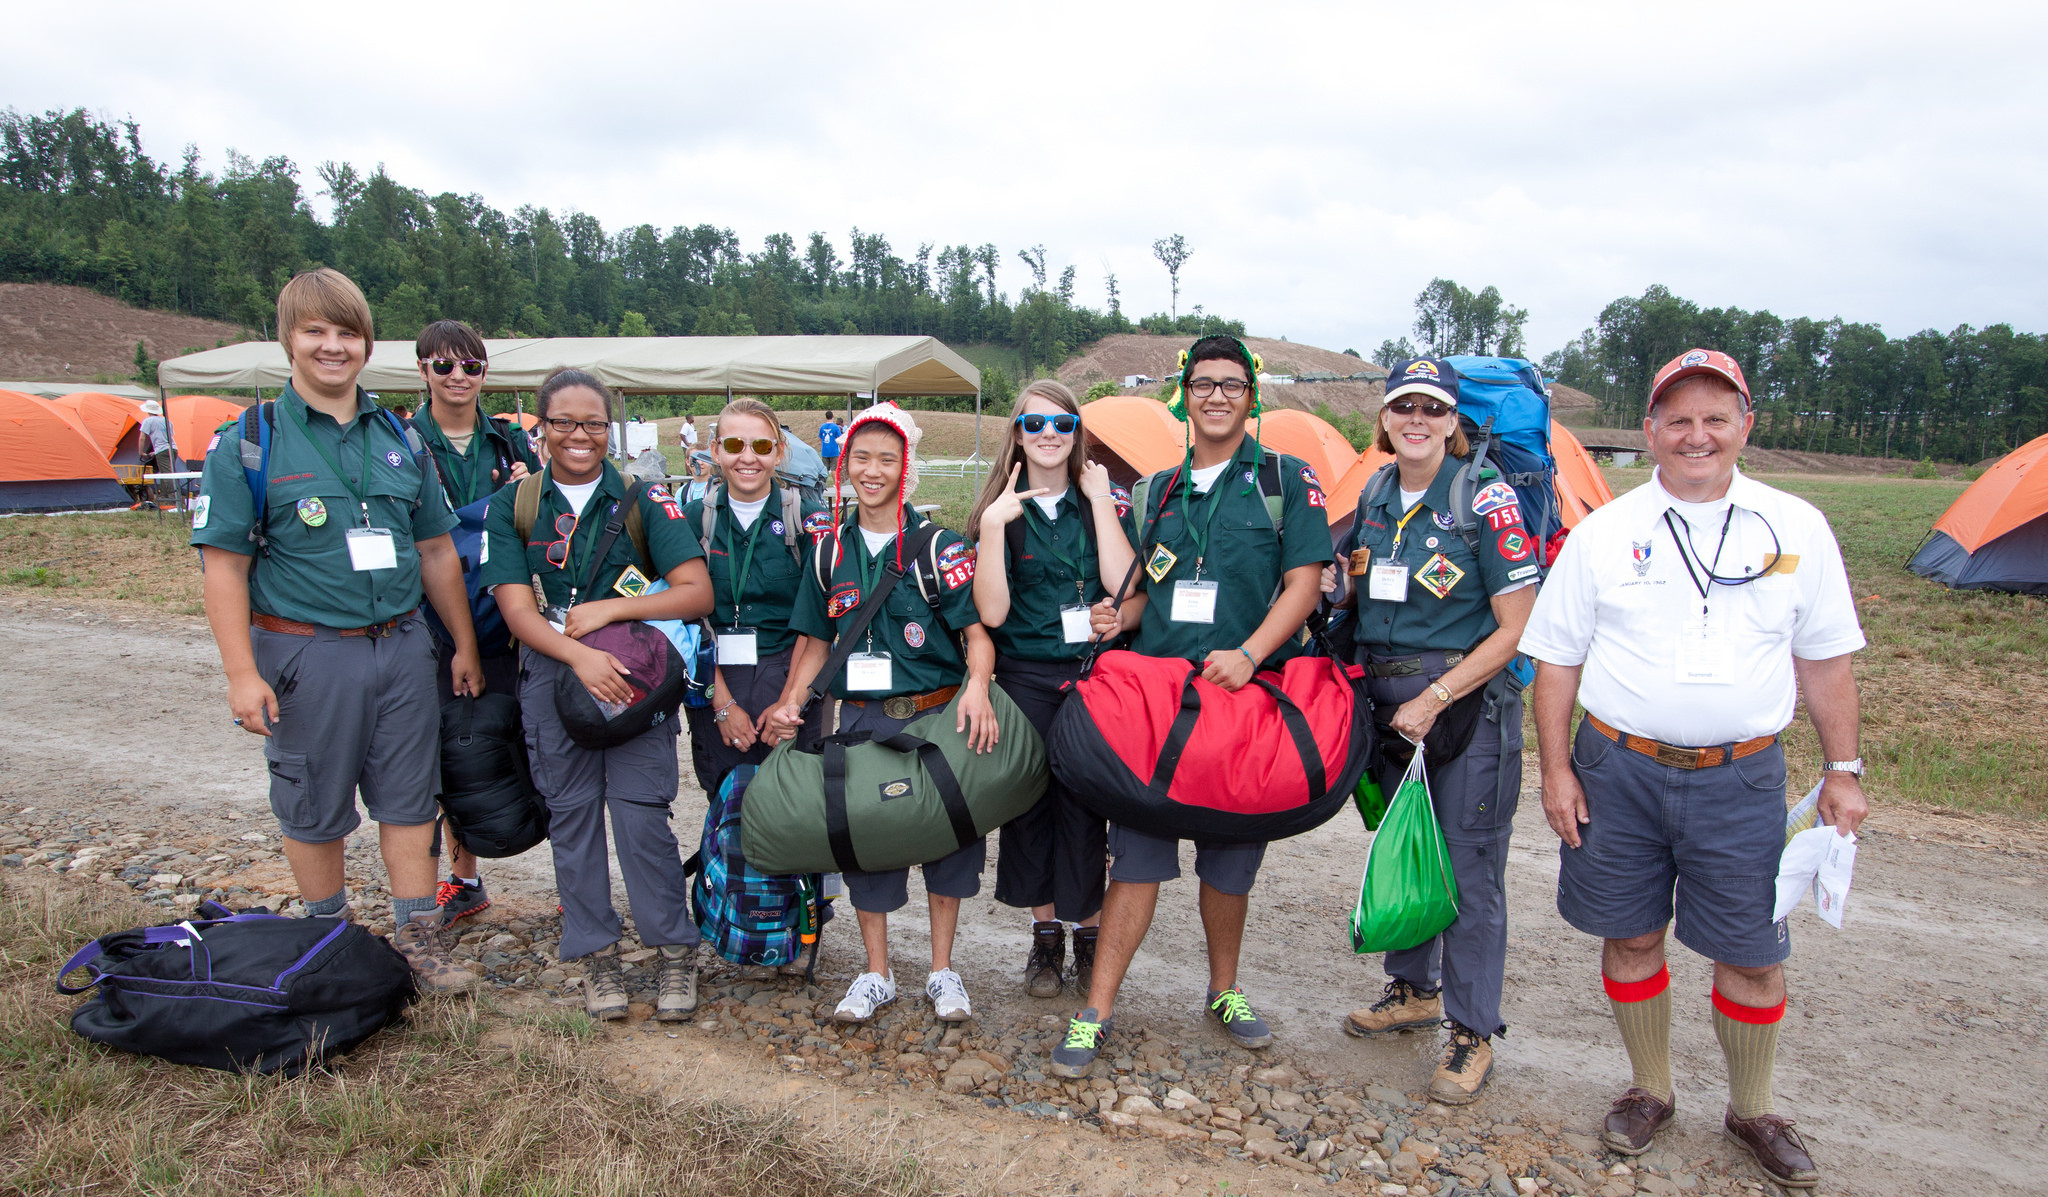 A group of Venturers at the National Jamboree